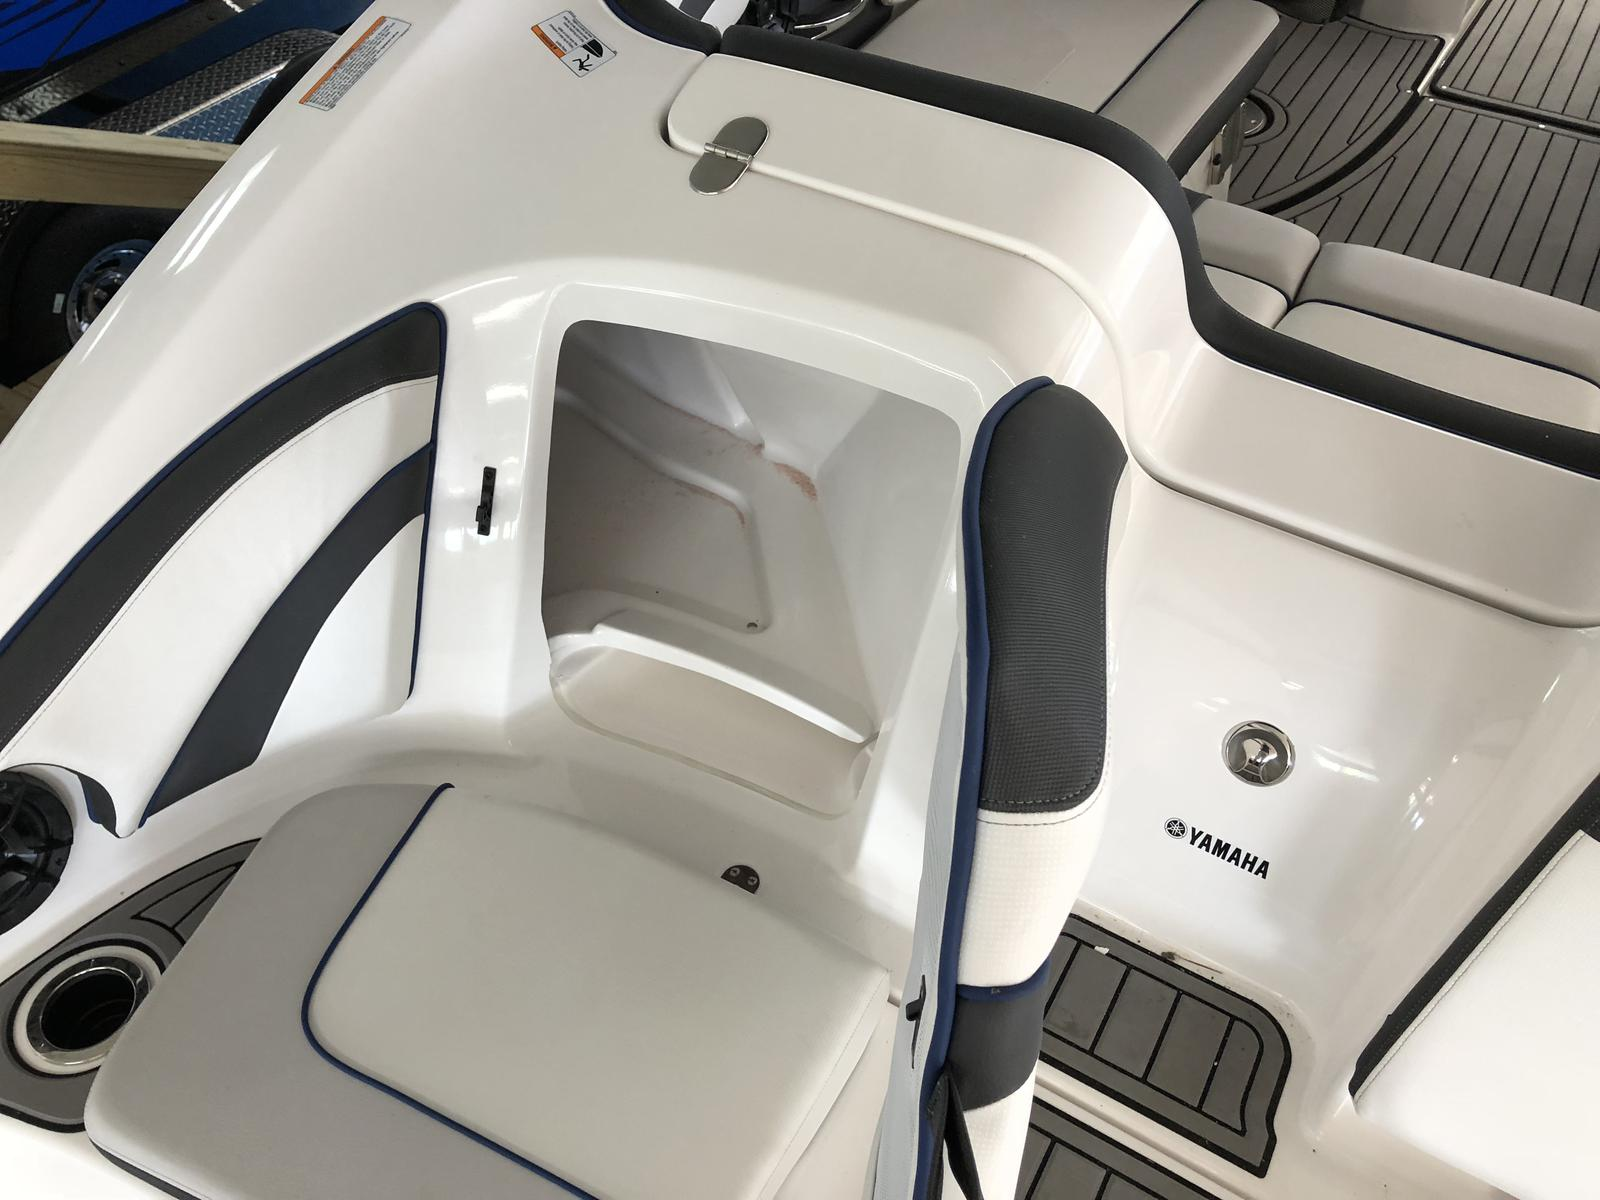 2018 Yamaha 242 Ltd S E Series For Sale In Indianapolis Just Jet Boat Dual Battery Wiring Diagram Img 7919